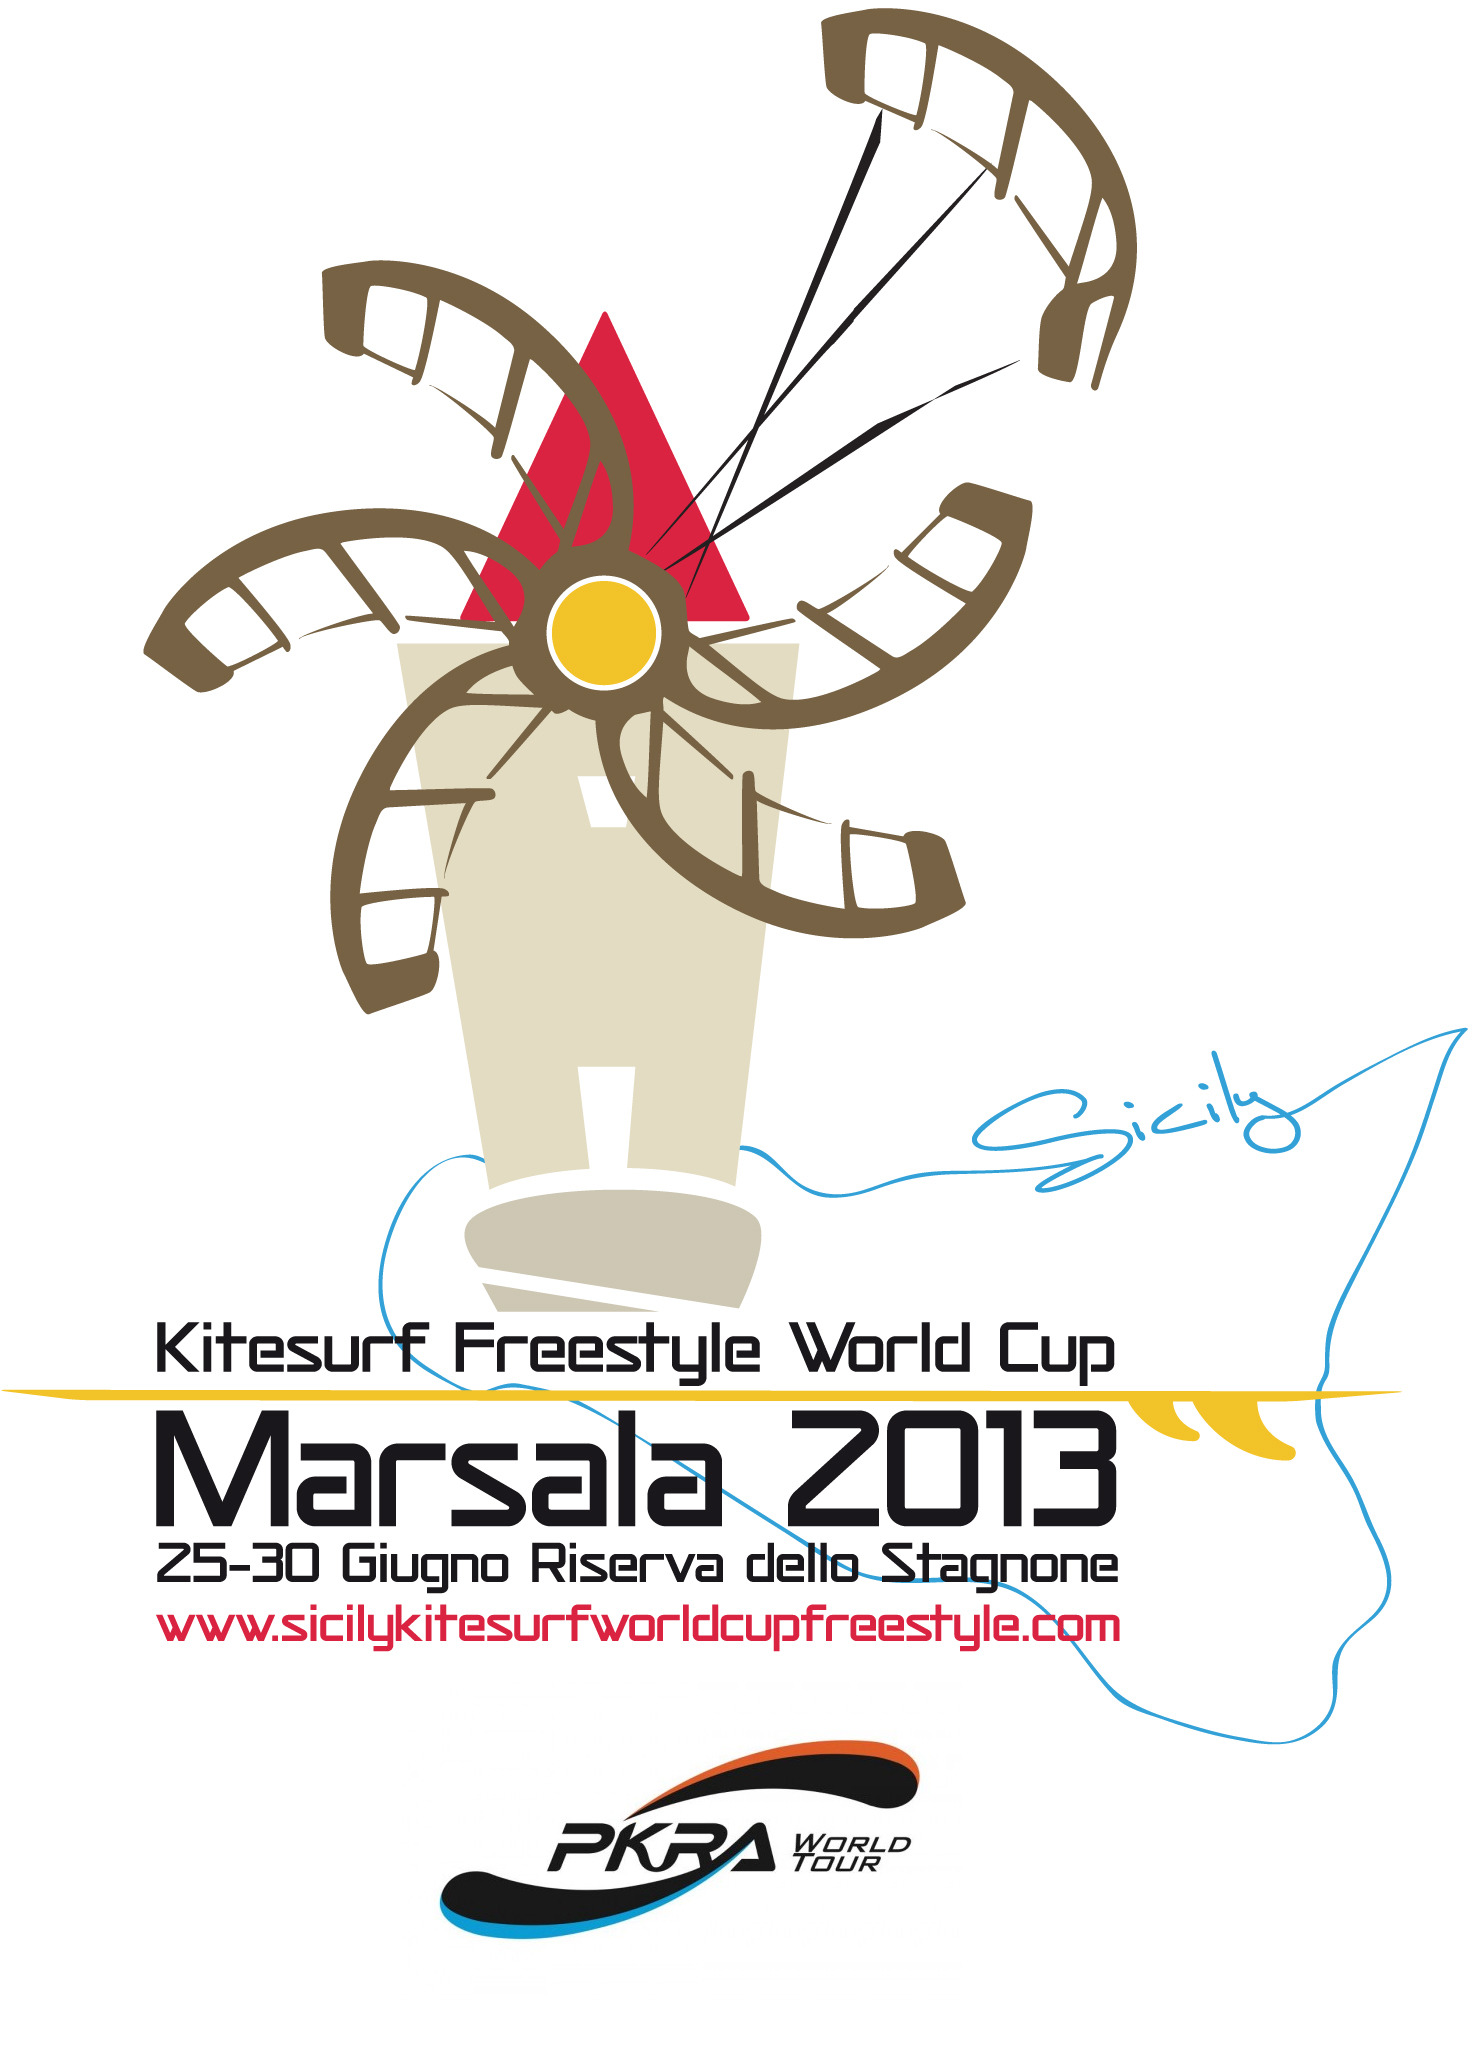 MArsala Kitesurf World cup 2013